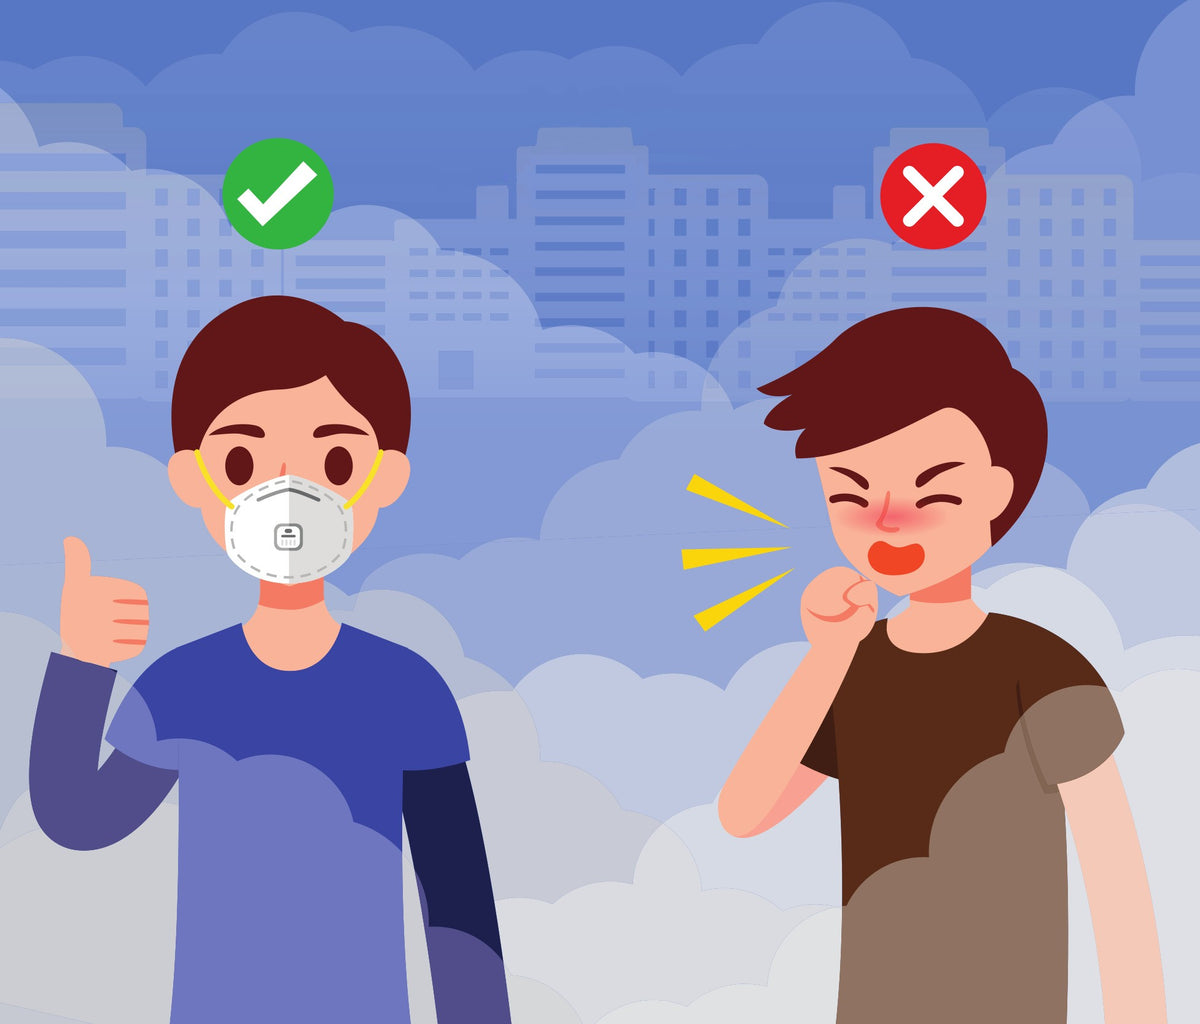 thumbsup mask - correct. coughing in hand - incorrect.